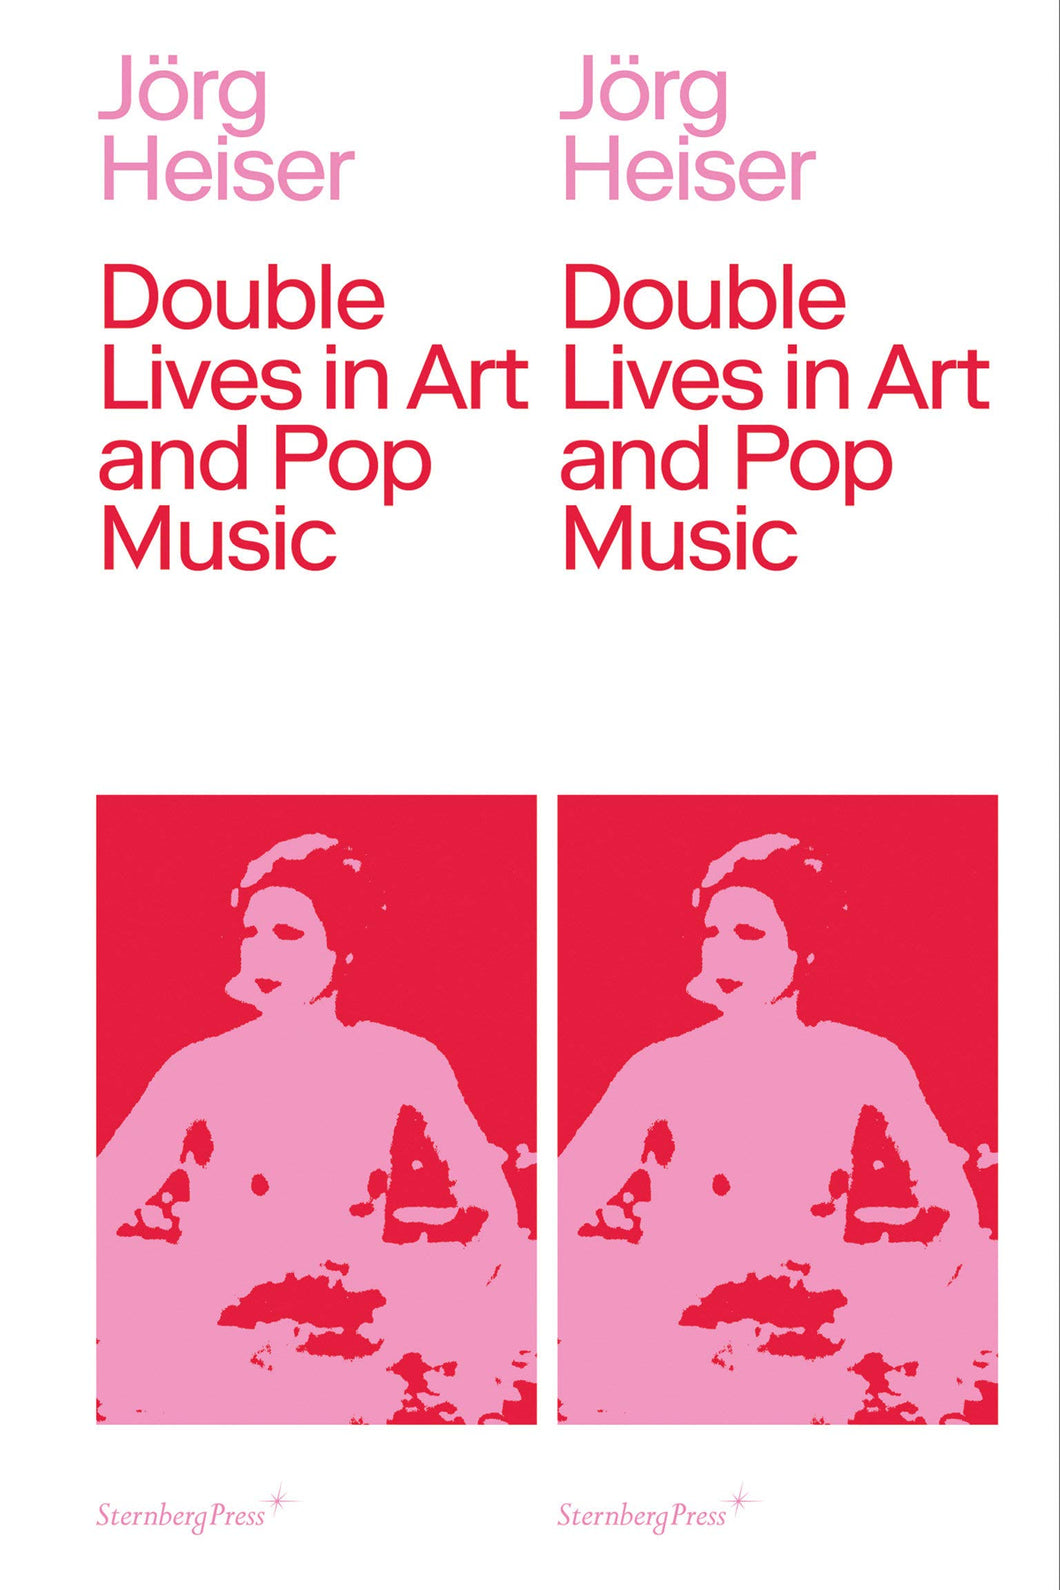 Jörg Heiser, <br>Double Lives in Art and Pop Music